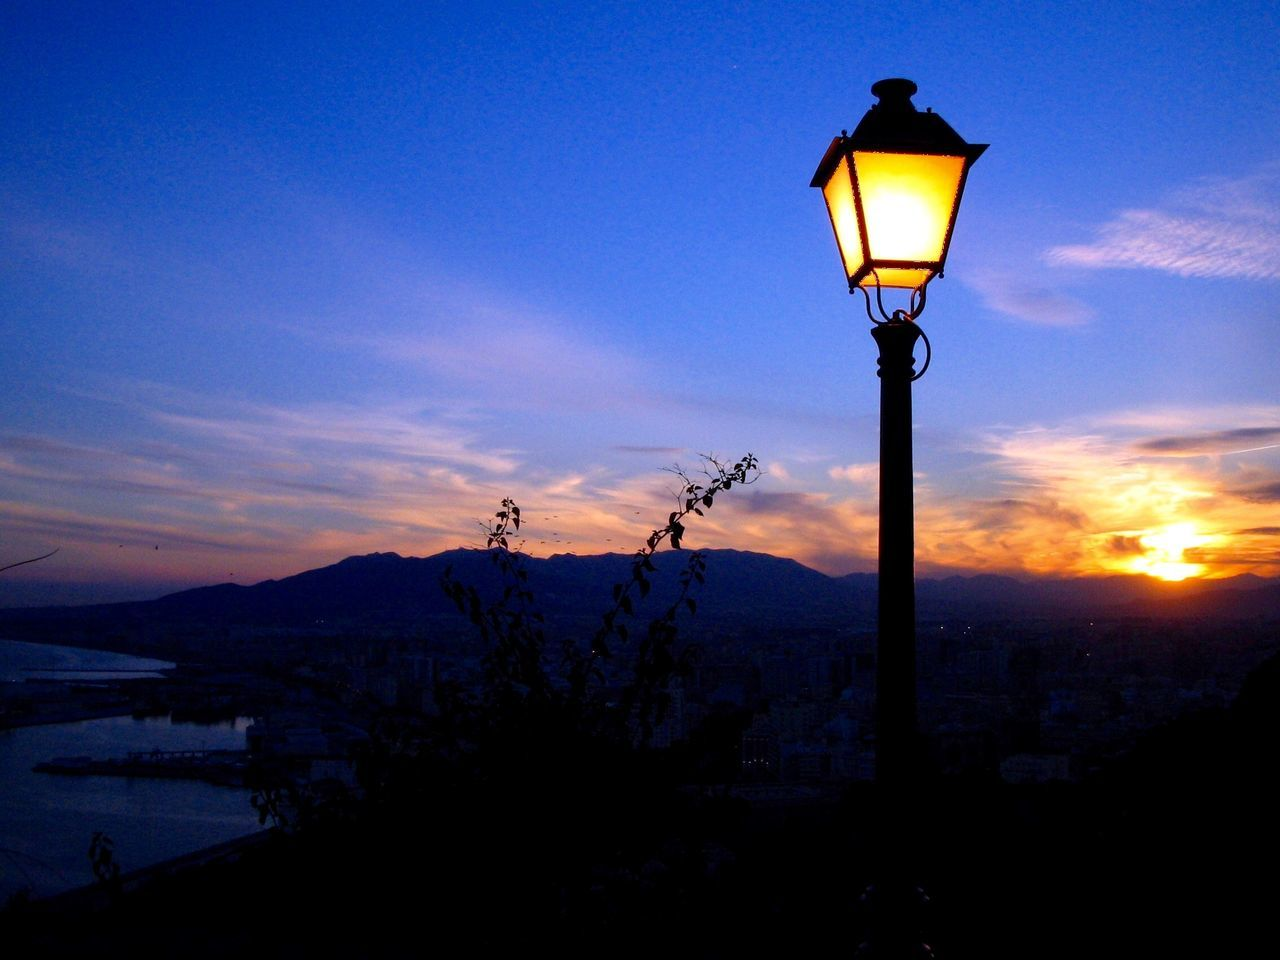 lighting equipment, silhouette, sunset, street light, nature, illuminated, sky, beauty in nature, outdoors, no people, tranquility, scenics, blue, mountain, day